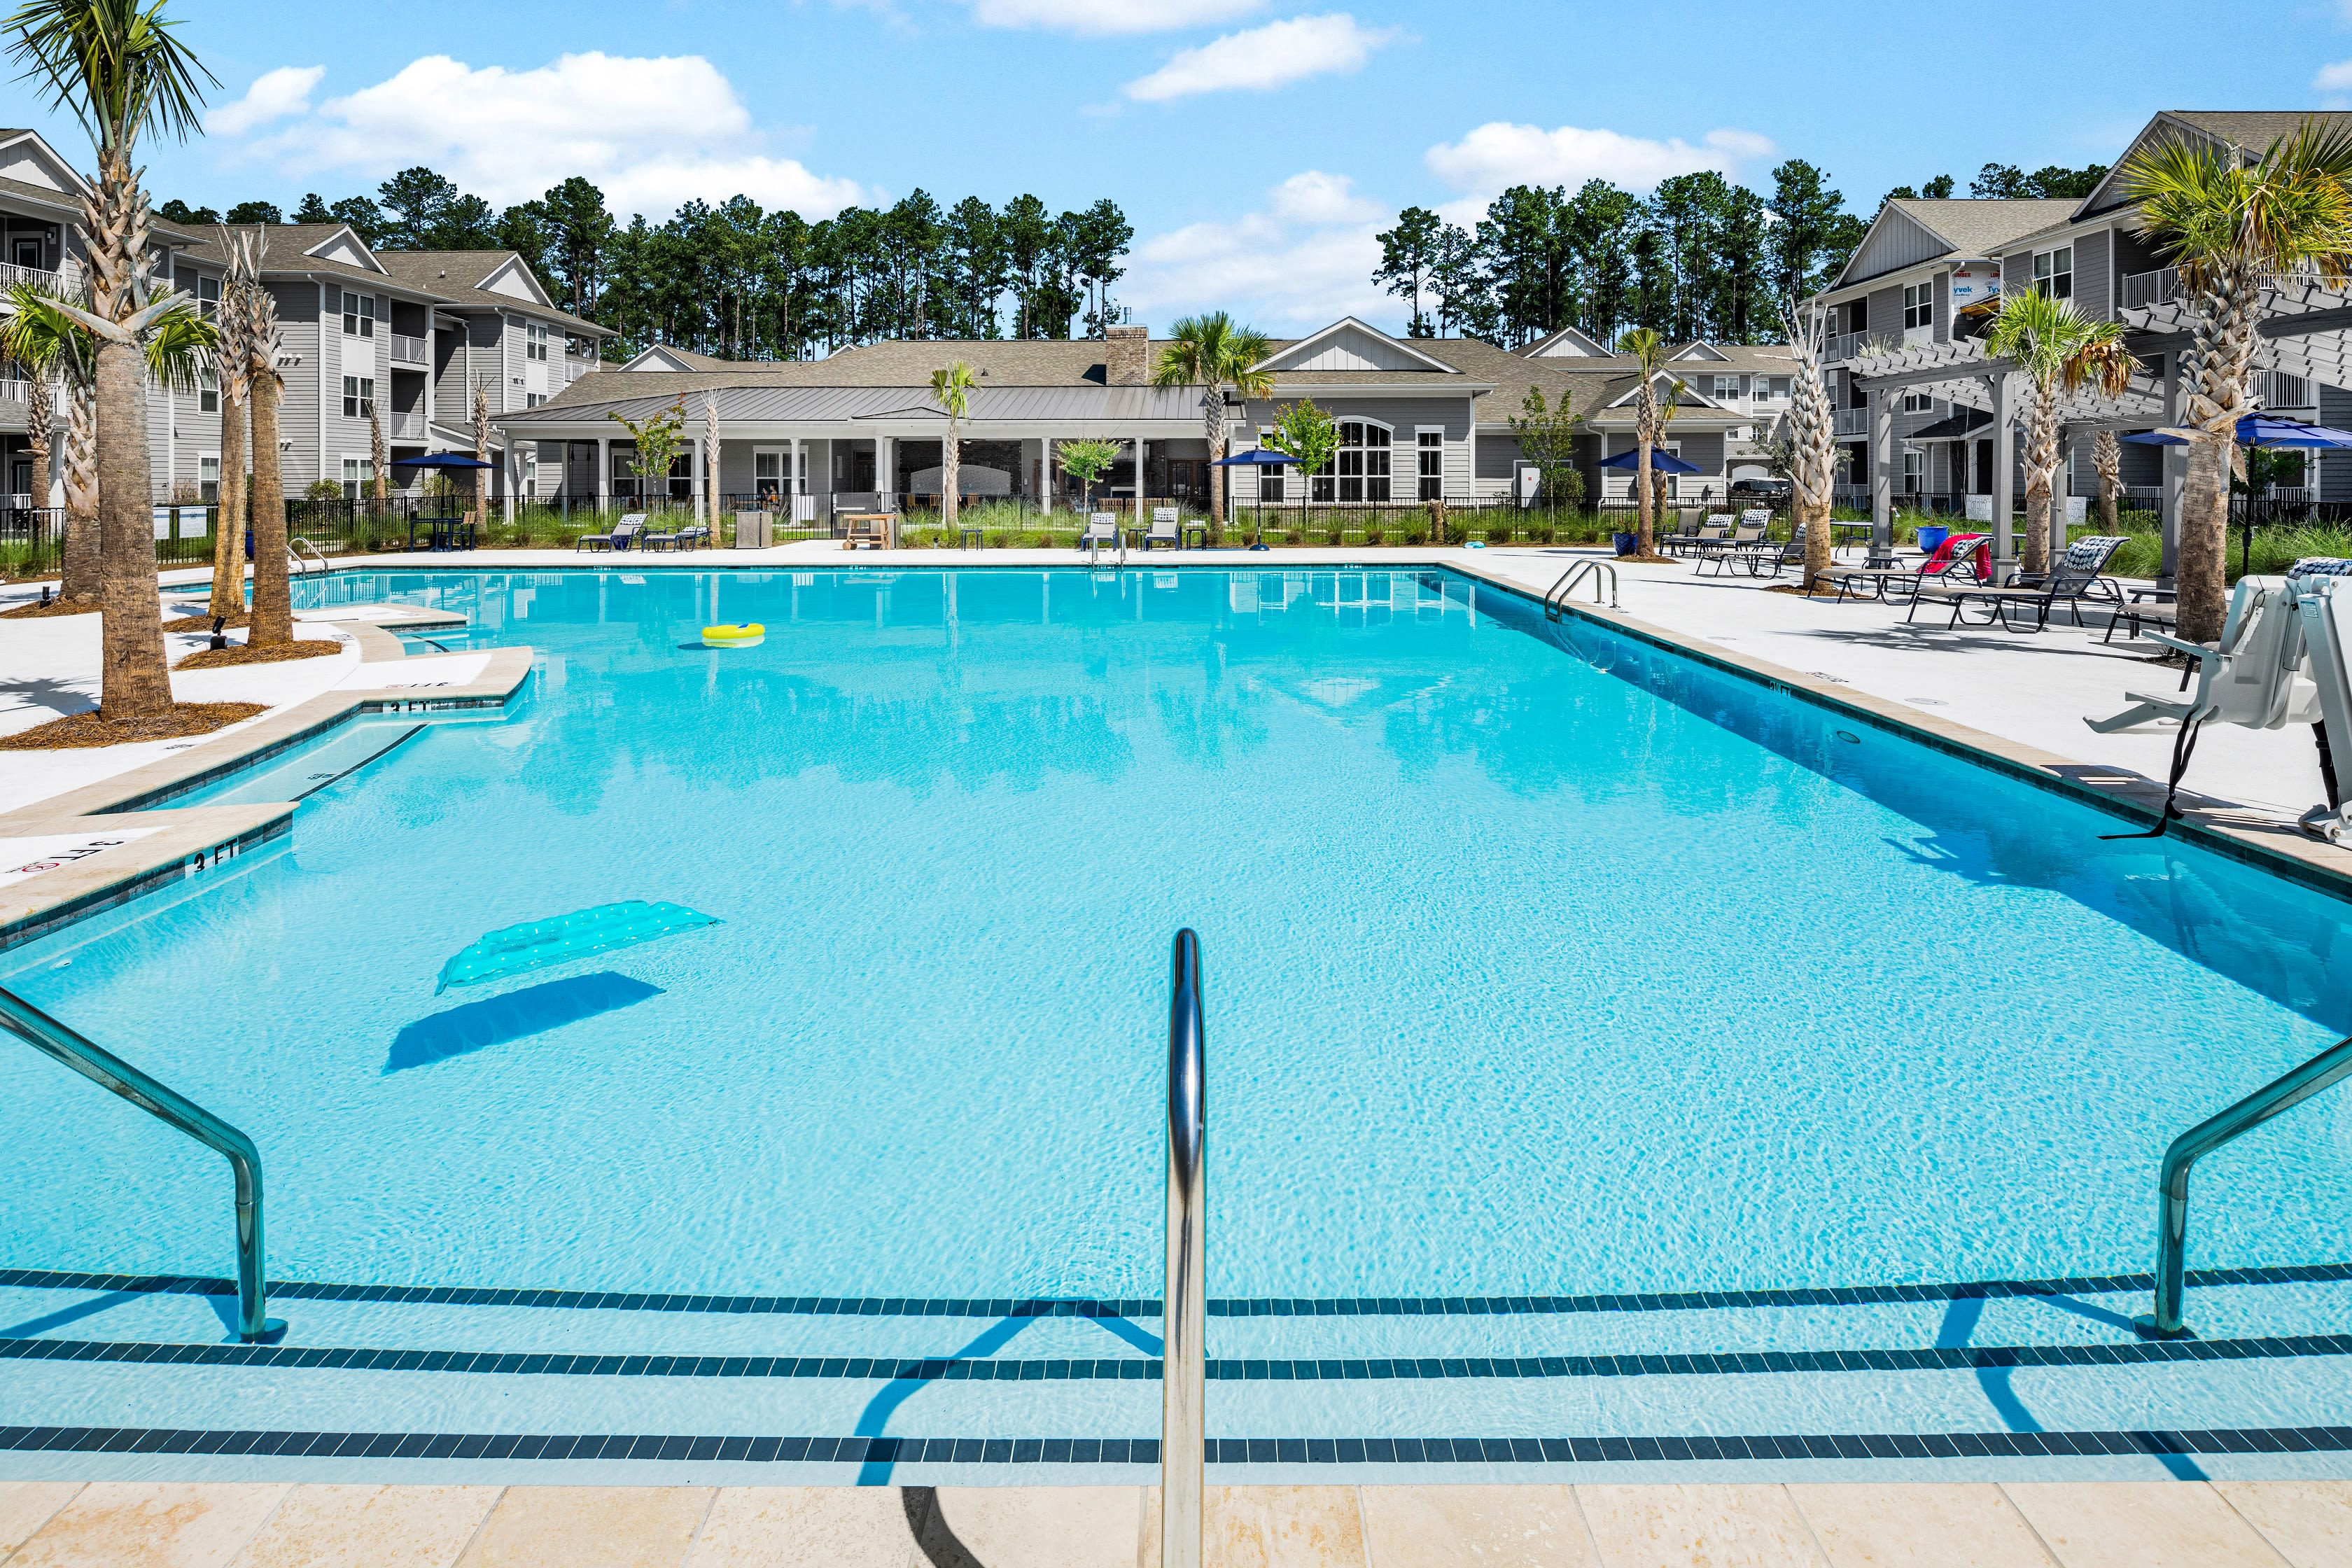 Incredible resort style swimming pool on a gorgeous day at The Isaac in Summerville, South Carolina